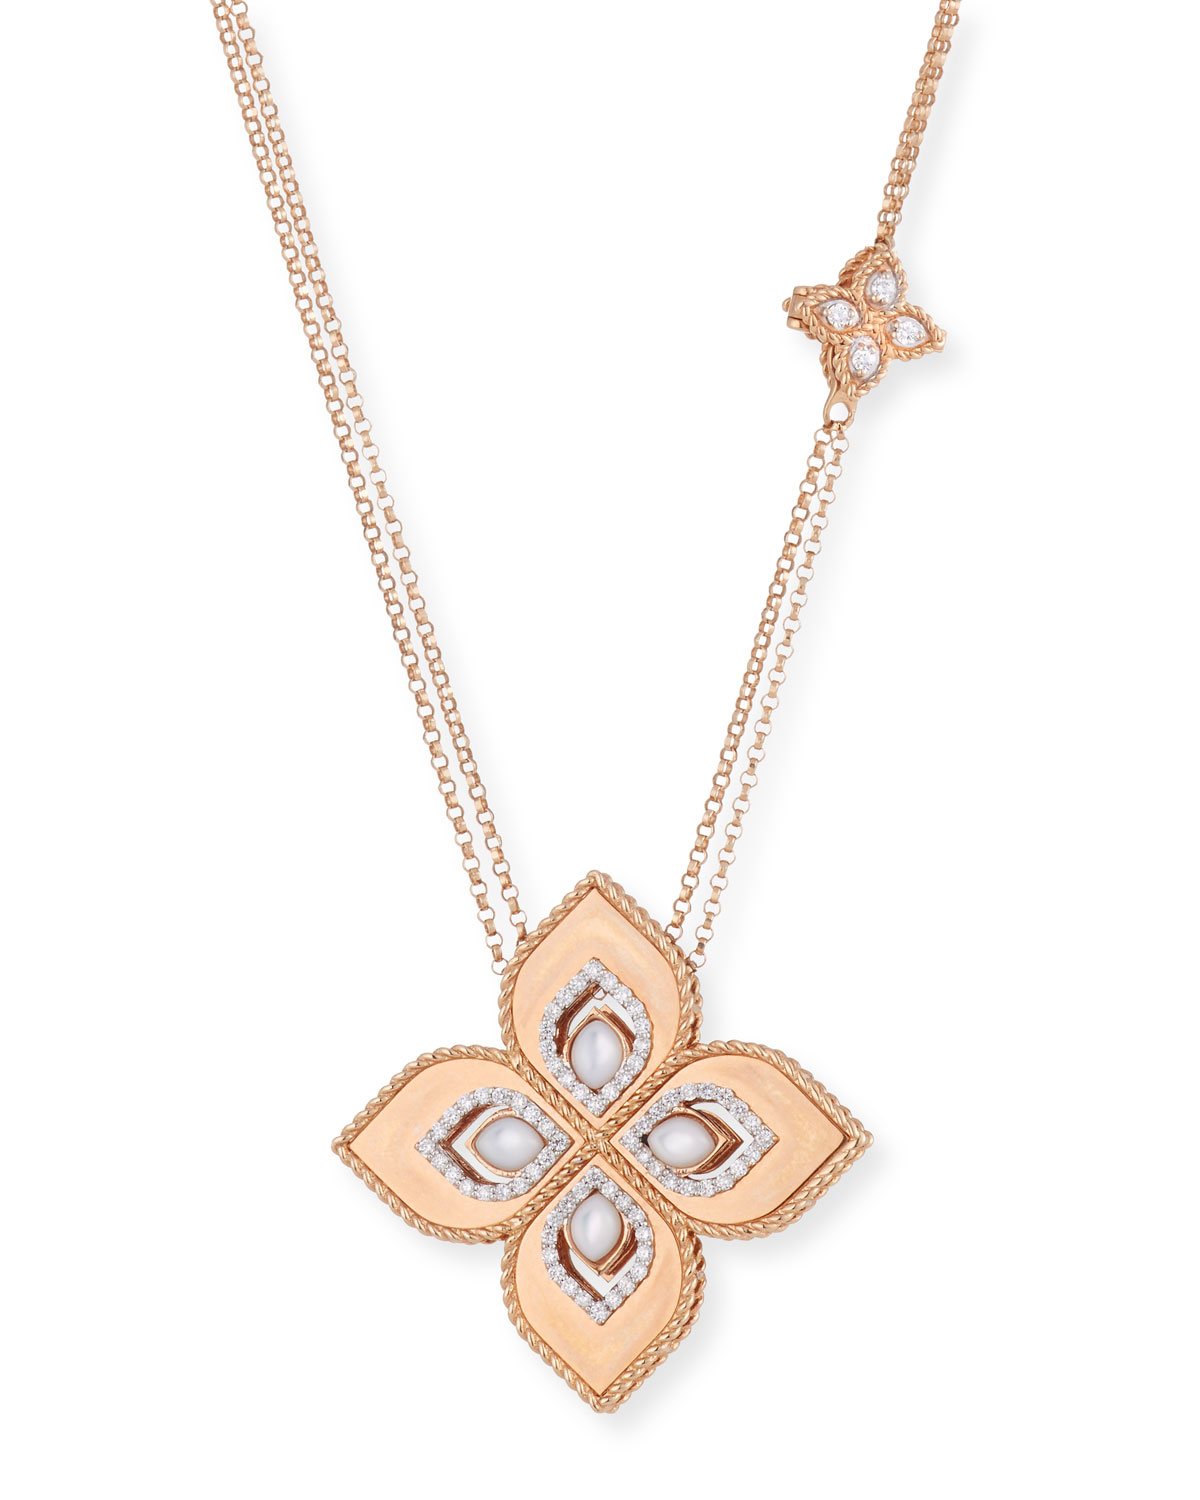 "Roberto Coin Venetian Princess 18k Rose Gold Mother-of-Pearl Cutout Necklace with 1.2"" Pendant"